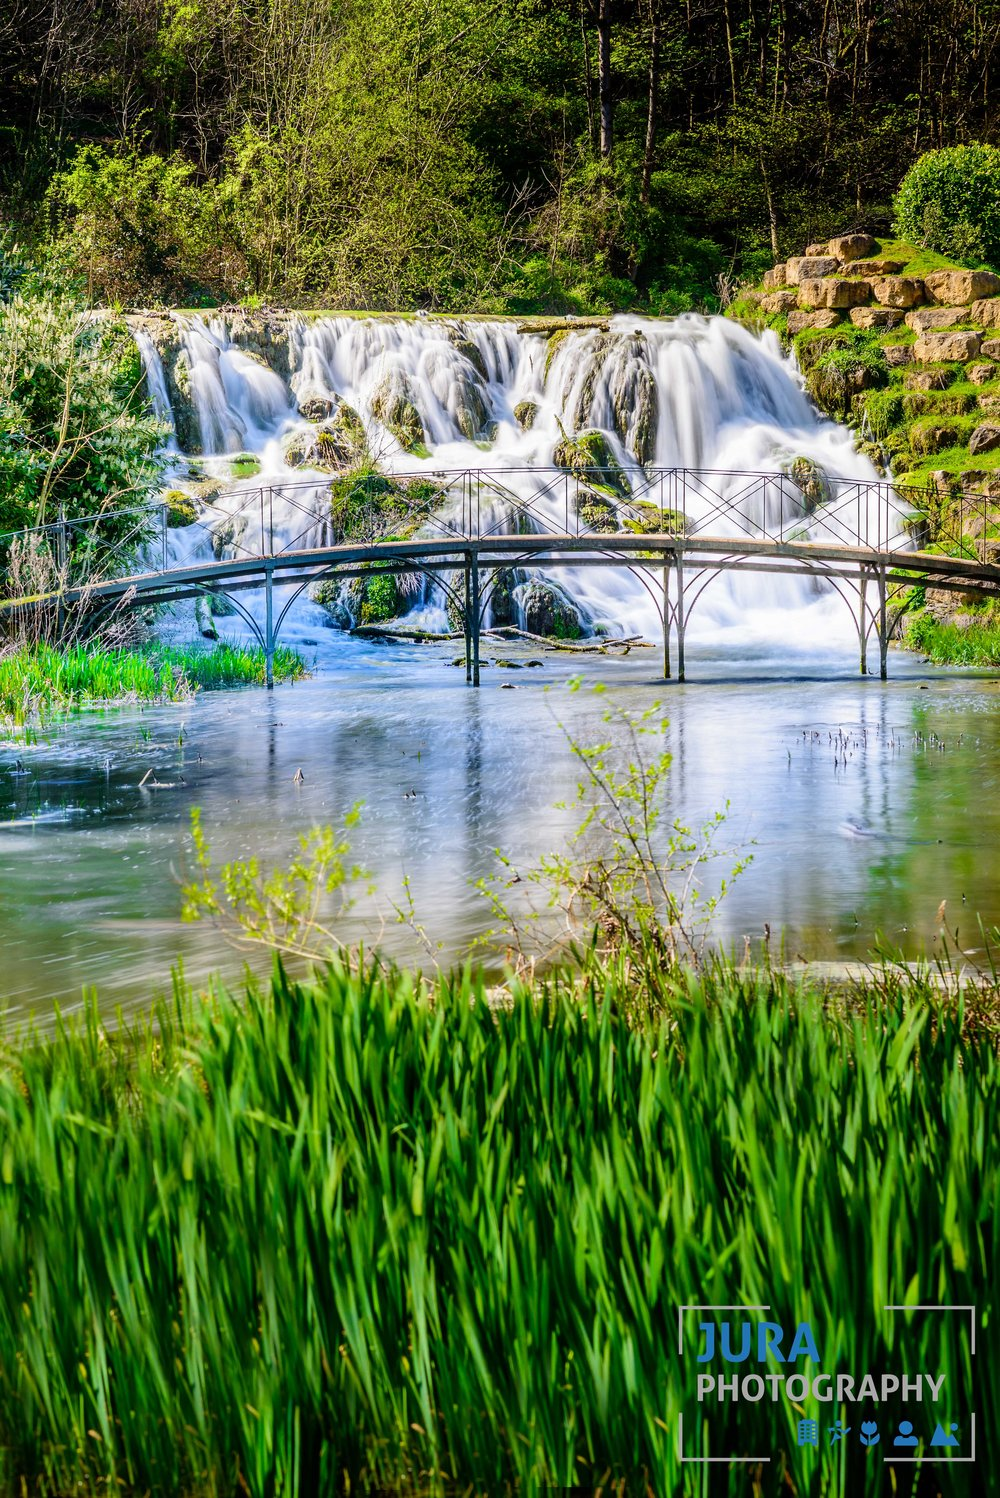 Location One - Cascades at Blenheim Palace